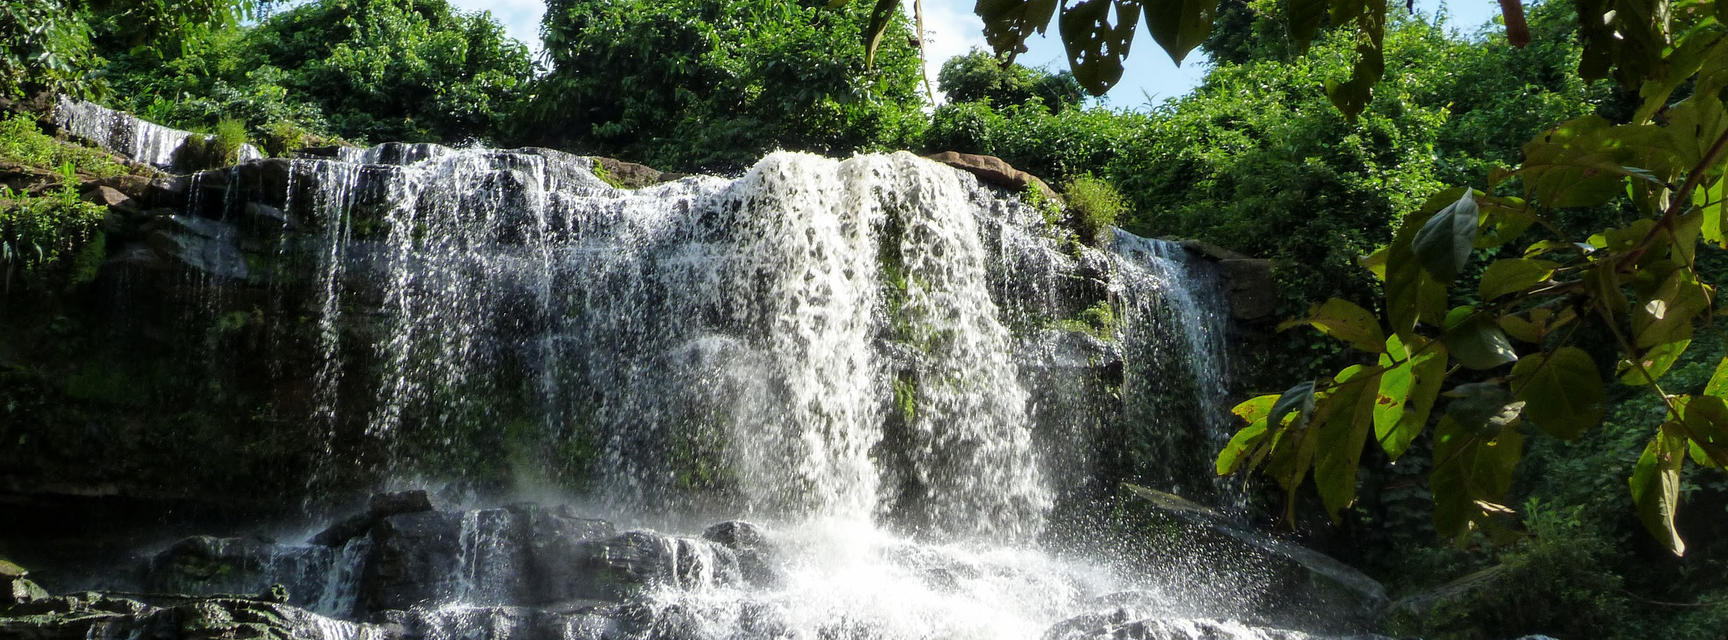 waterfall with trees in foreground